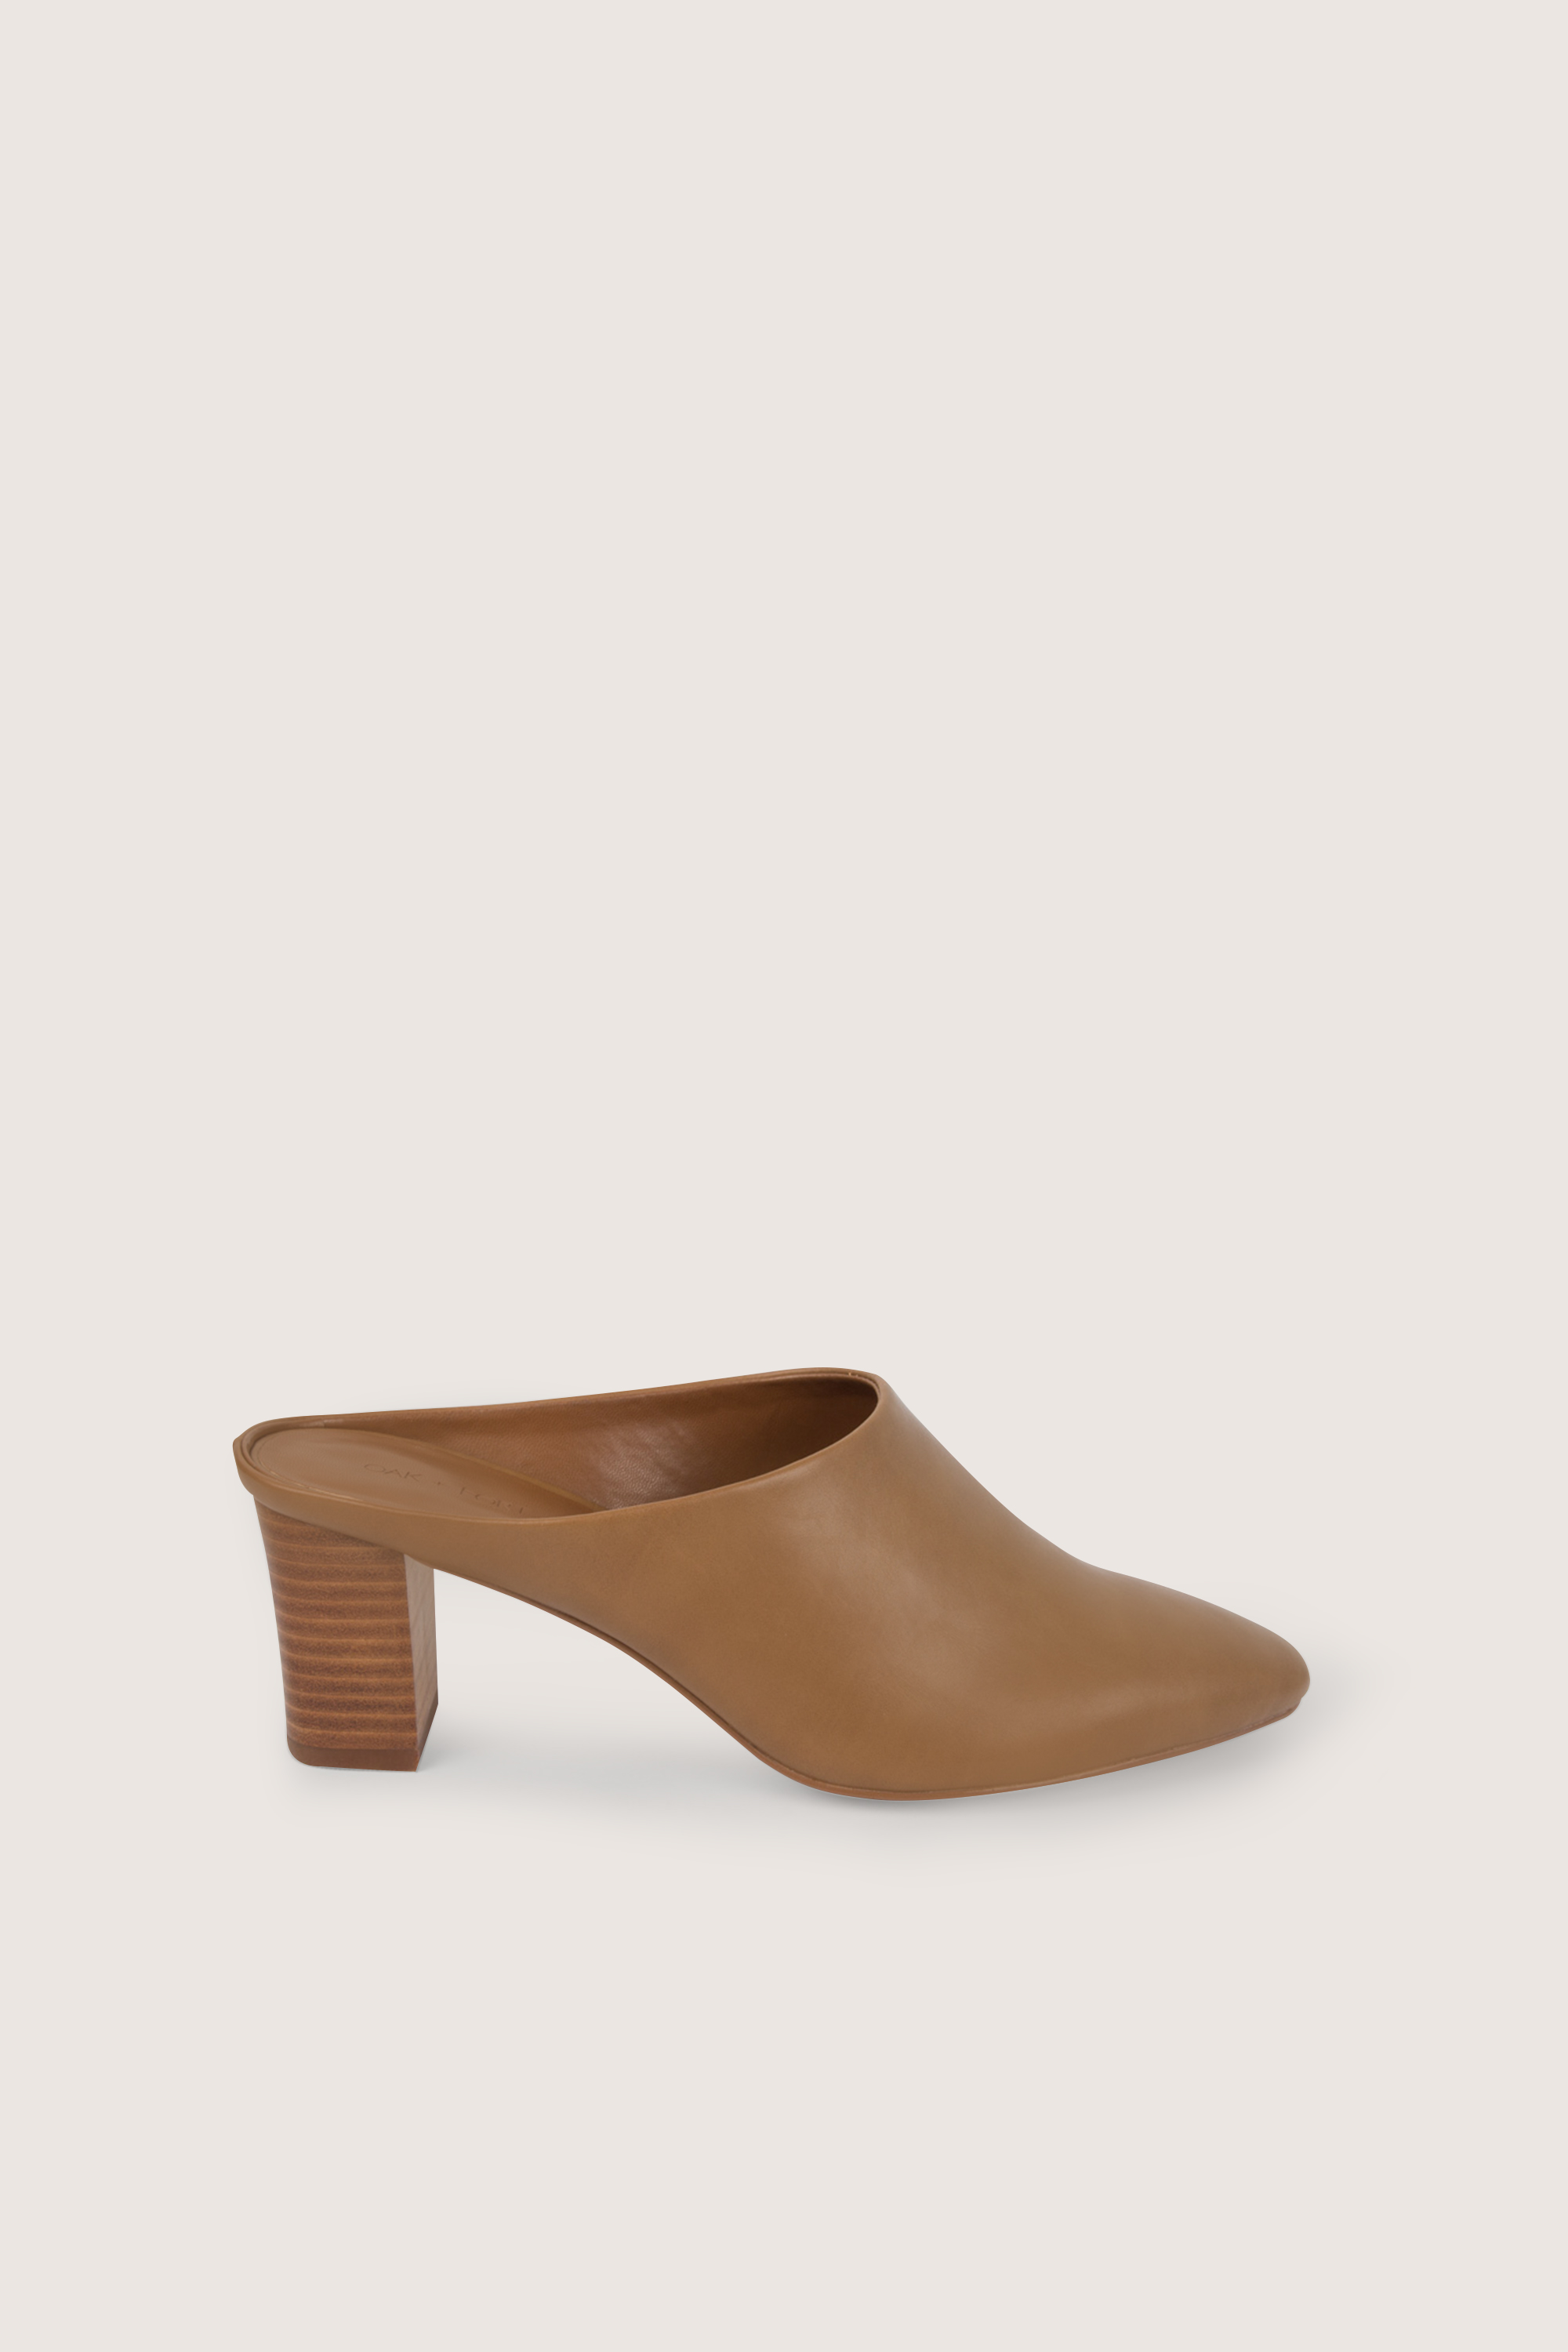 Heeled Mule 1987 Brown 5